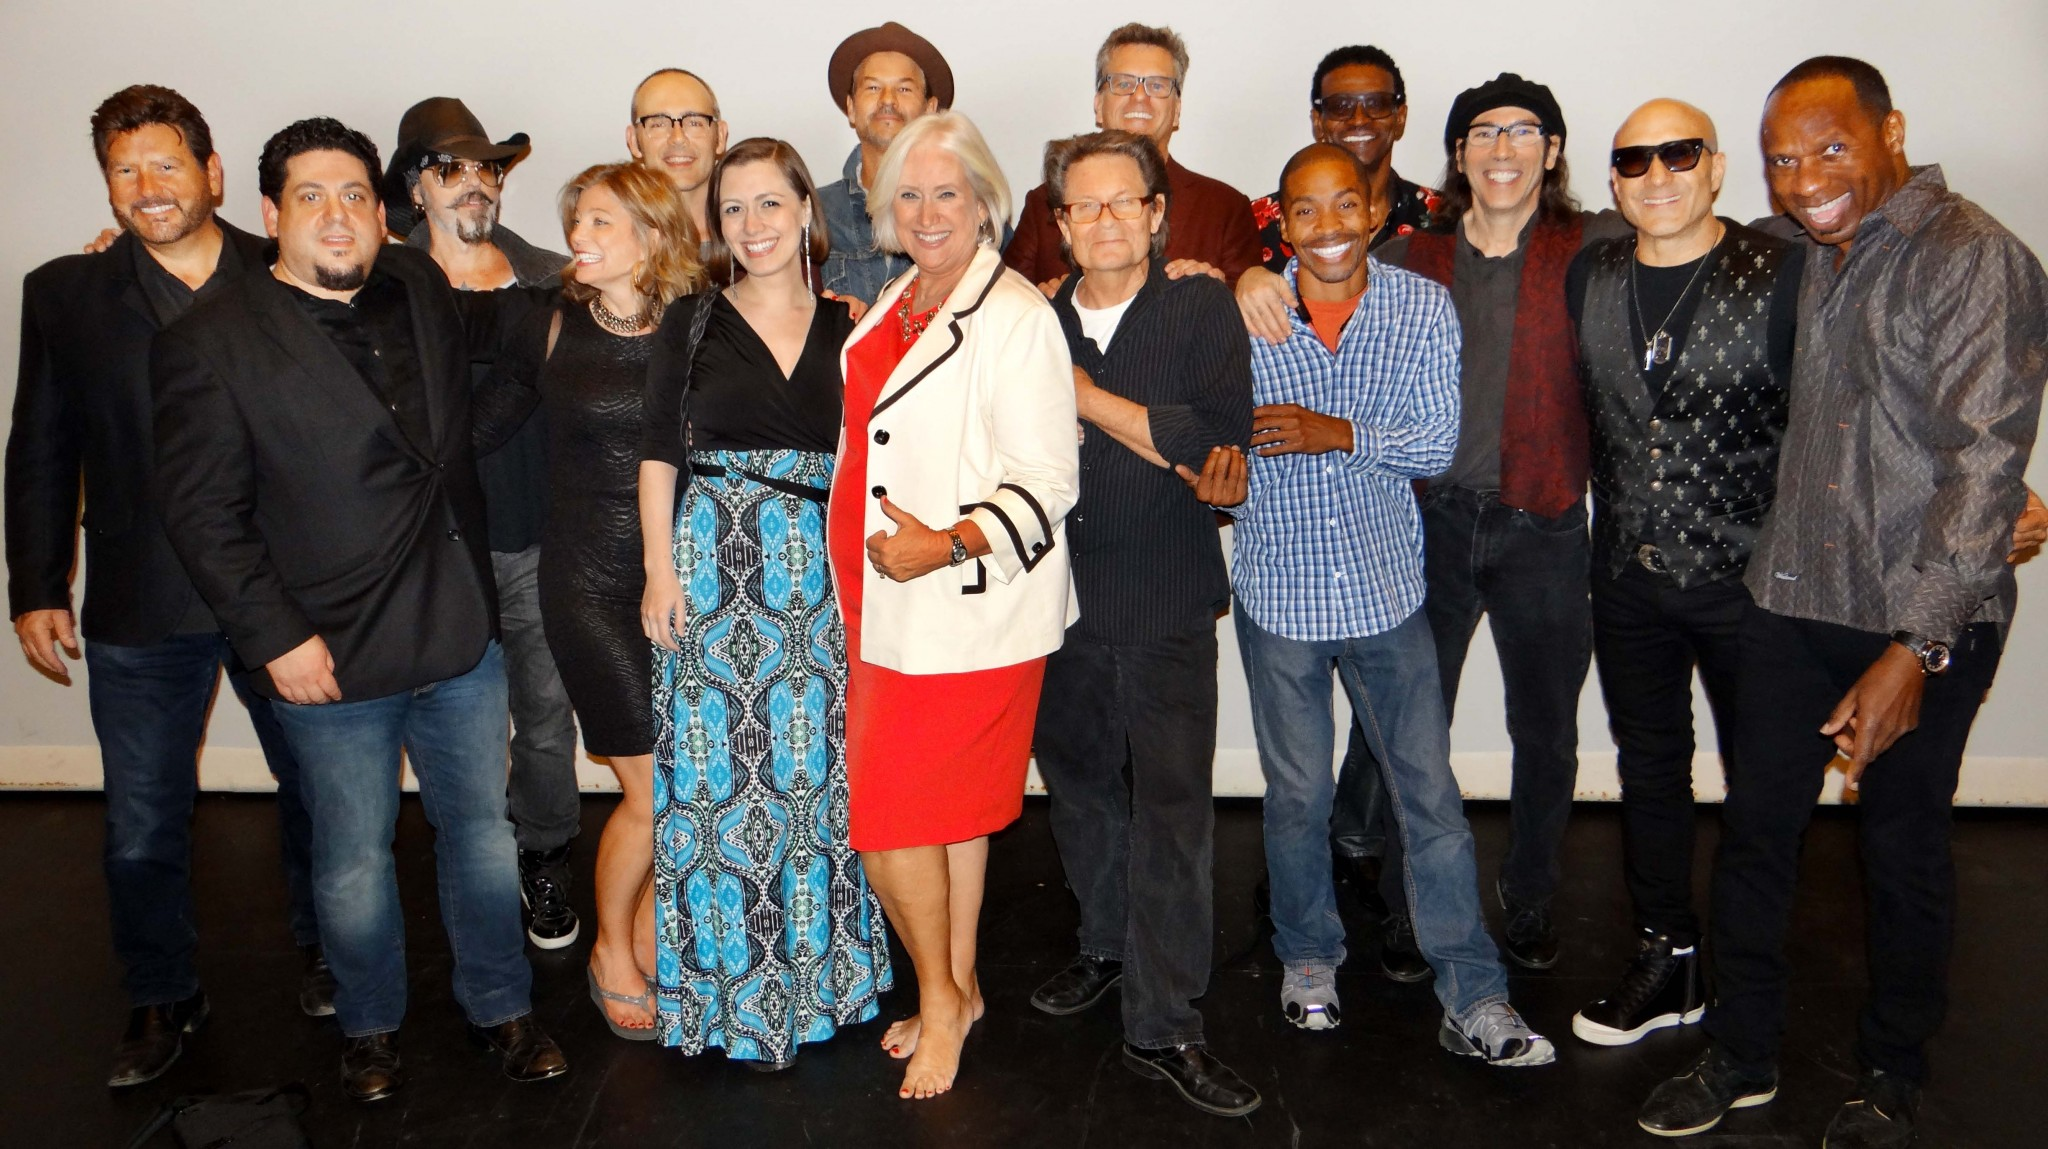 Sharon Jimenez embraces a network of celebrities, producers and visionaries after a successful Bring Hollywood Home Network Celebration concert. Front row: Rob Stone, Michele Winick, Whitney Avalon, Sharon Jimenez, Scott Page, Willis Turner. Back row John Burk, Christopher Ameruoso, Gregory Douglas, Austin Hanks, Chad Hollister, Cal Bennett, Martin Guigui, Kenny Aronoff, Mike Merrit (Photo by Tracy Saunders/October 7, 2016)